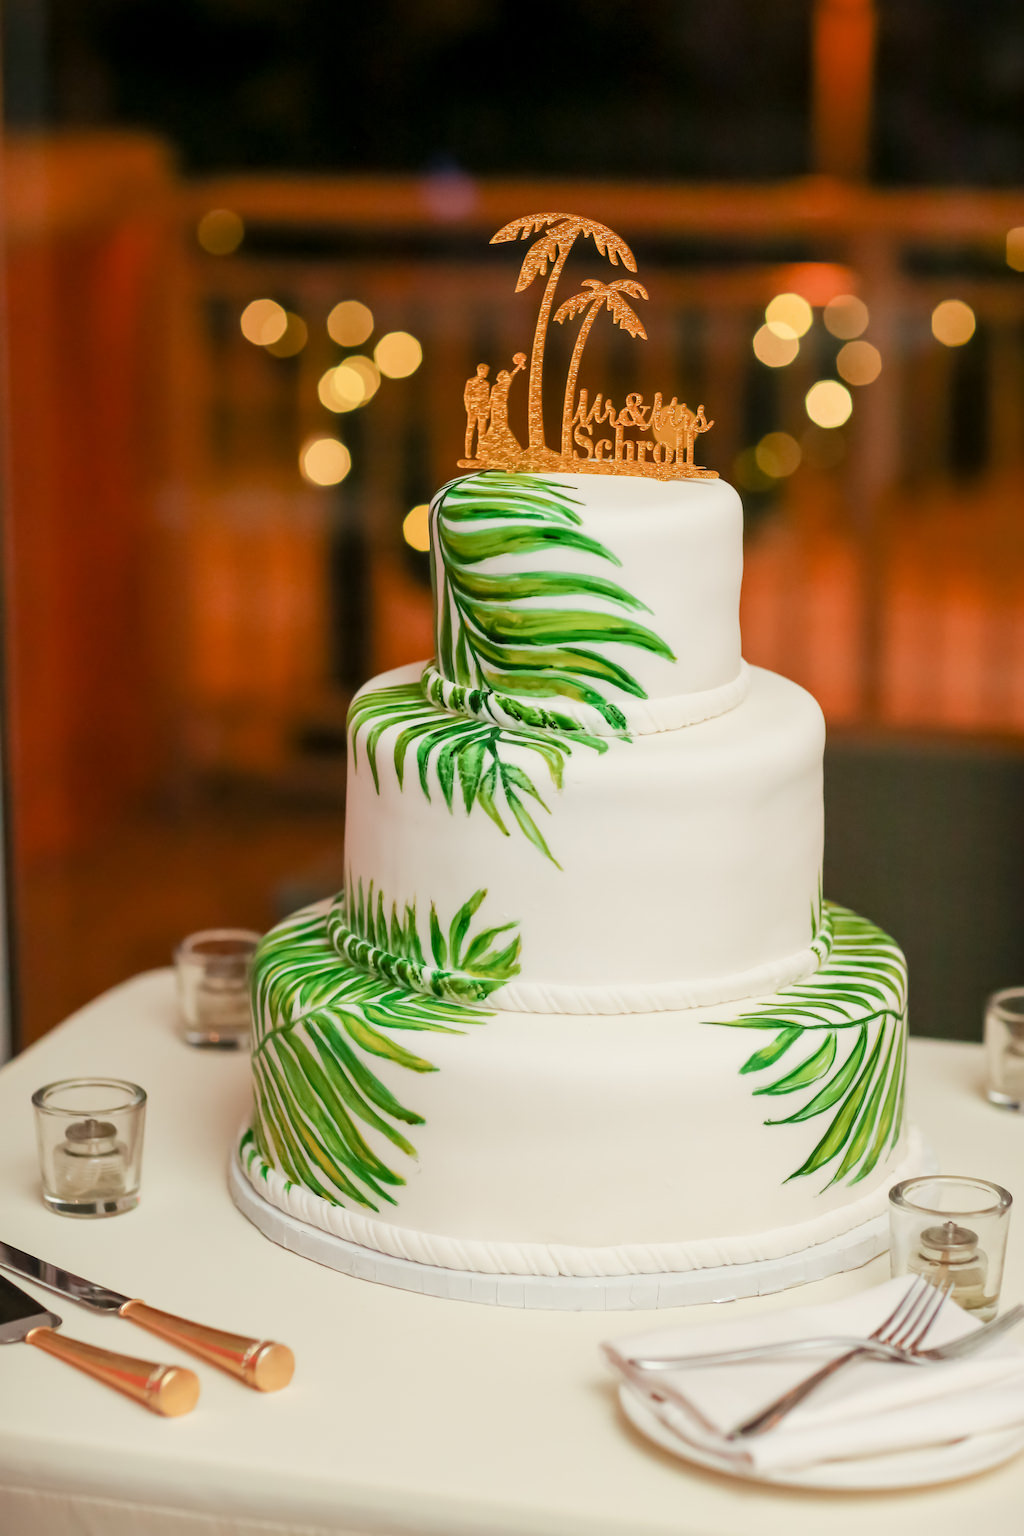 Tropical Inspired Smooth White with Painted Green Palm Leaves Wedding Cake with Custom Gold Cake Topper   Tampa Bay Wedding Photographer Lifelong Photography Studios